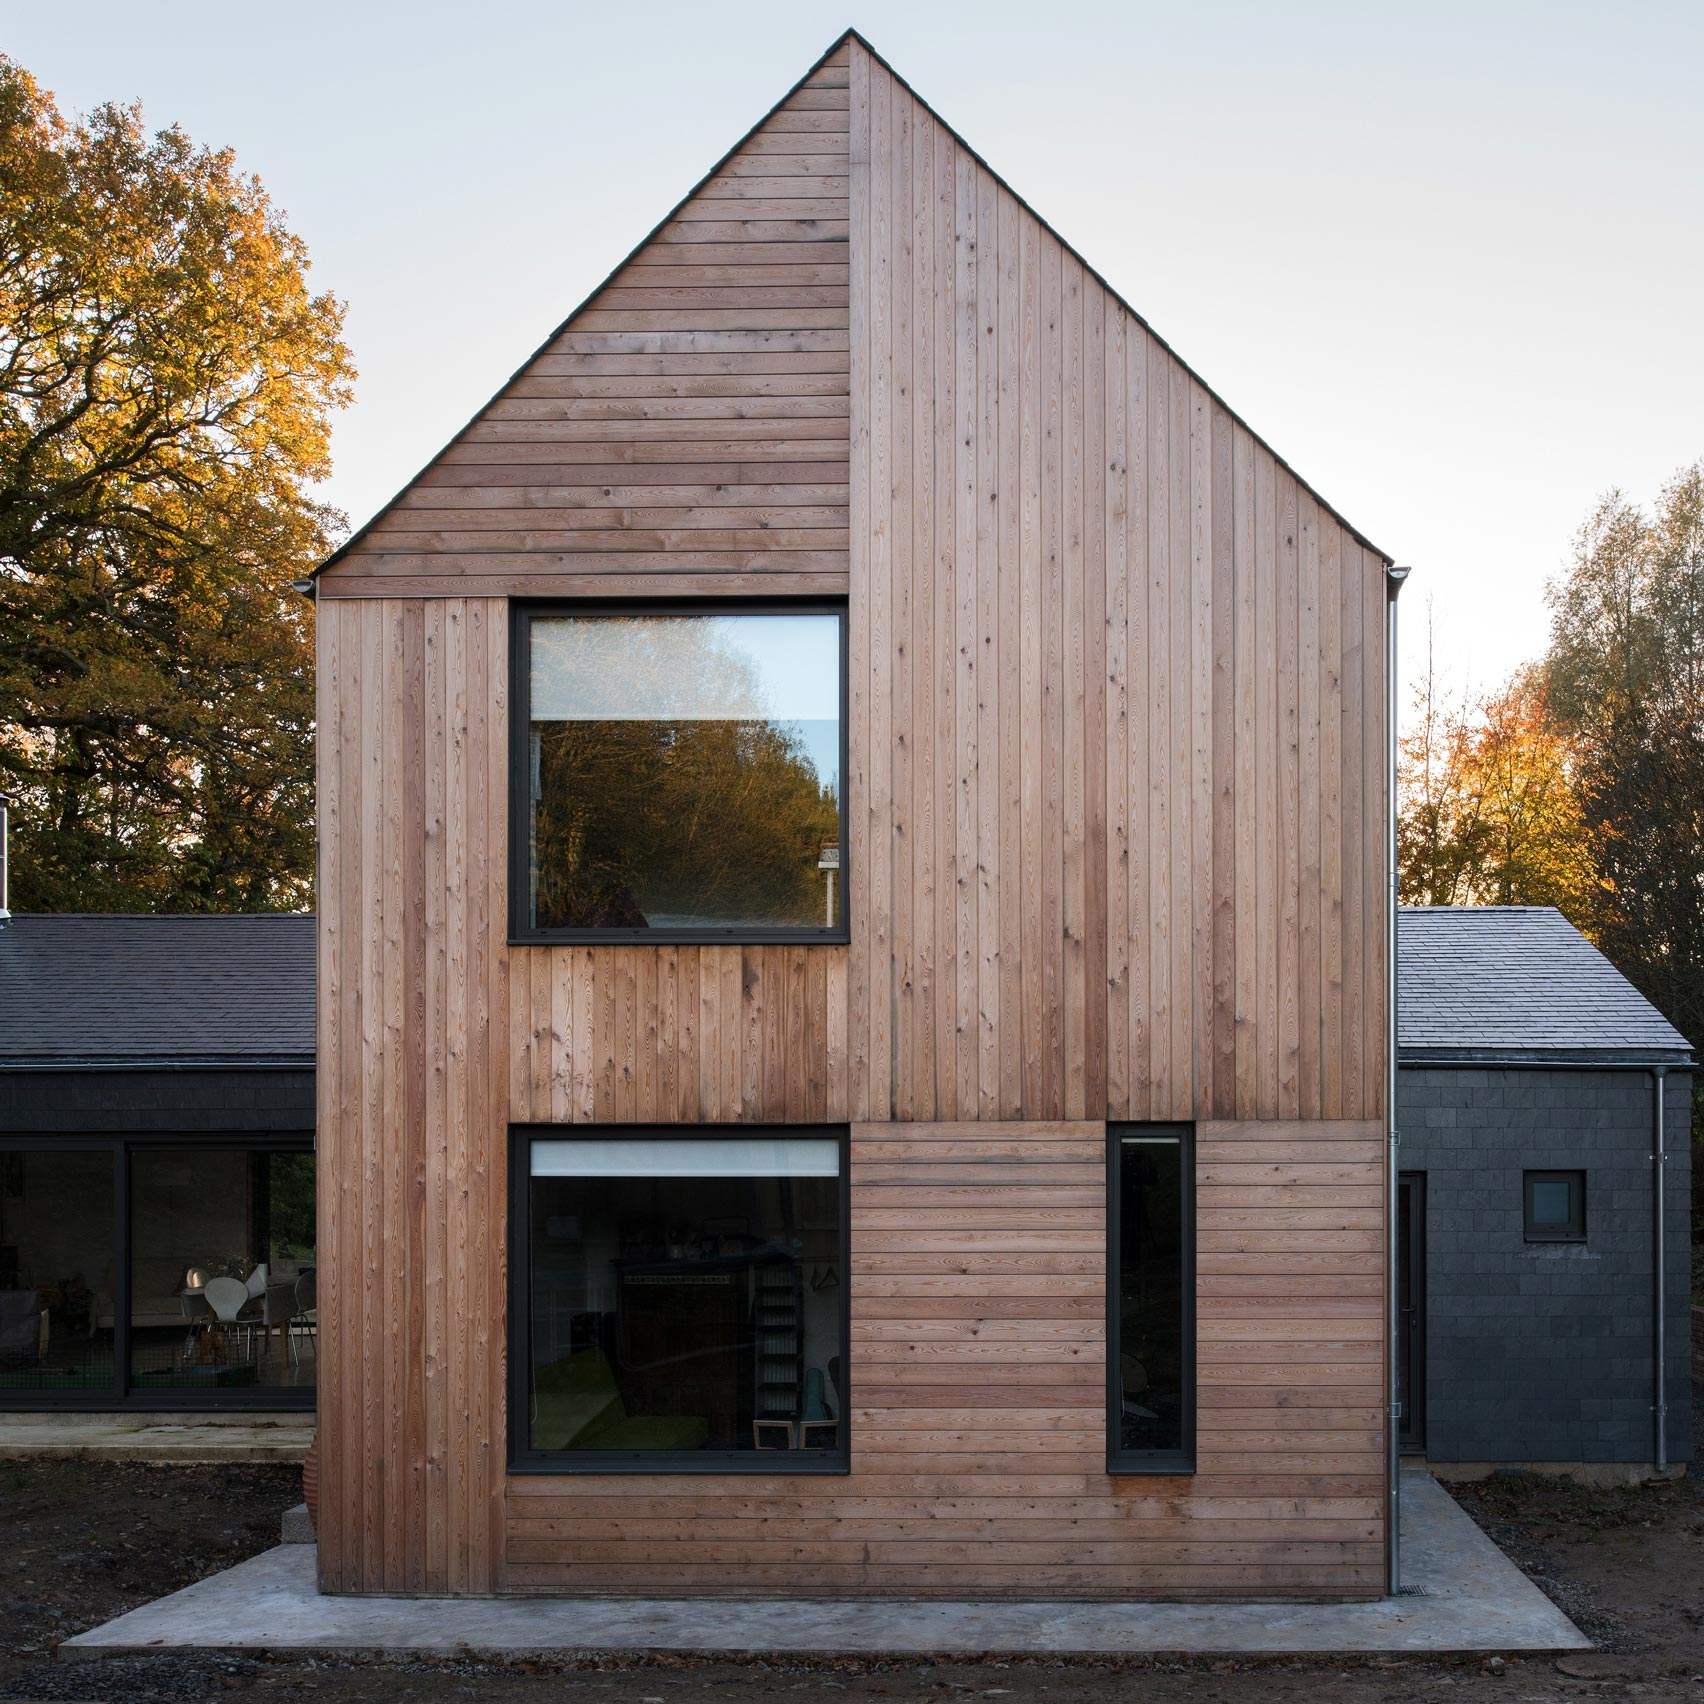 Cross Shaped House By Elliott Architects Stands In English Woodland